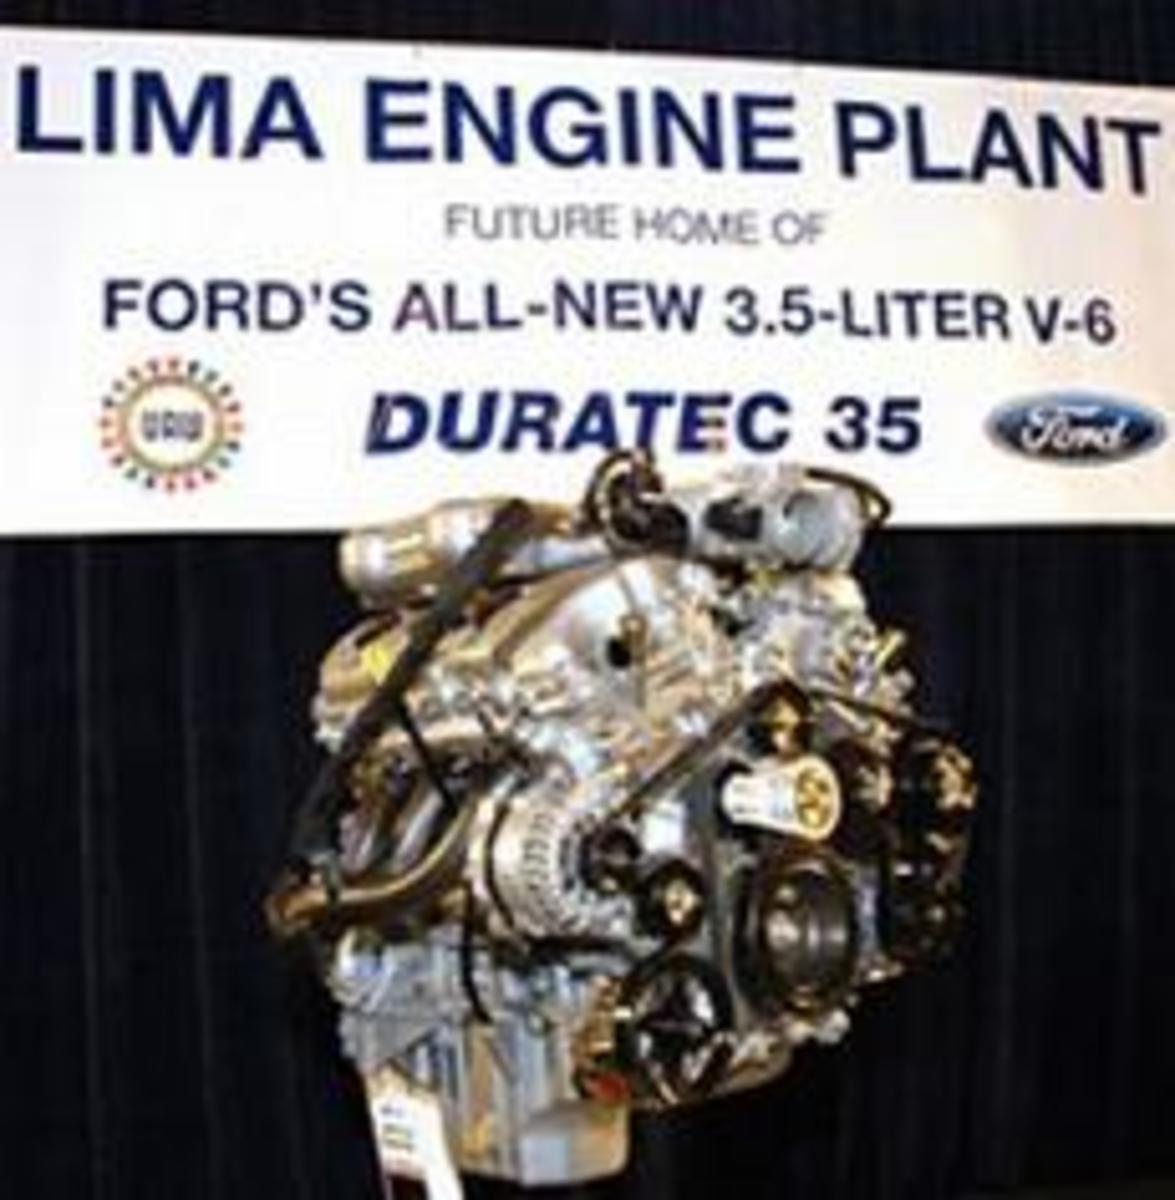 Ford Duratec Engine Series: from Mondeo/Contour 2.5L V6 to EcoBoost and Cyclone V6, and now, Duratec I4